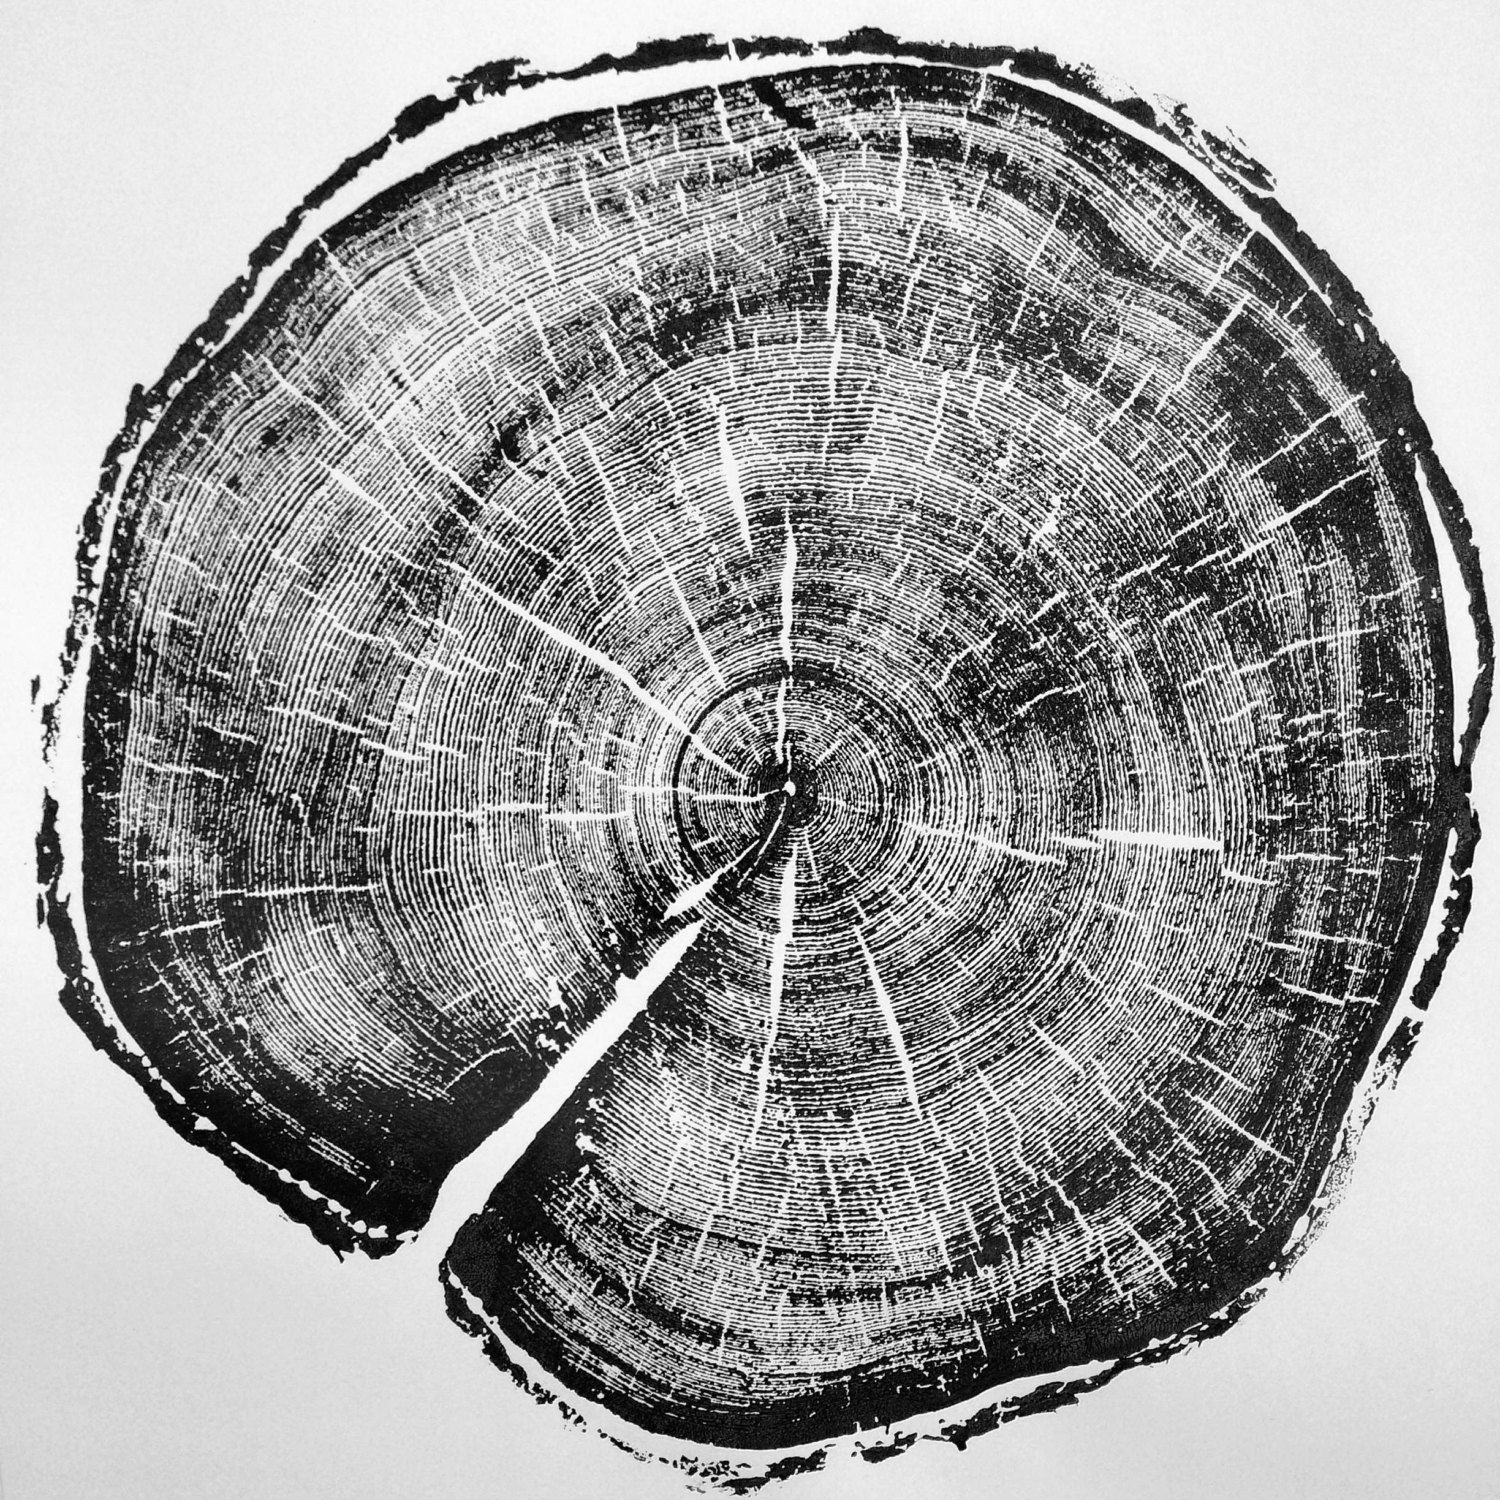 da72515a7f187 183 year old Tree, Tree ring art print, Woodcut print, Uinta Forest ...